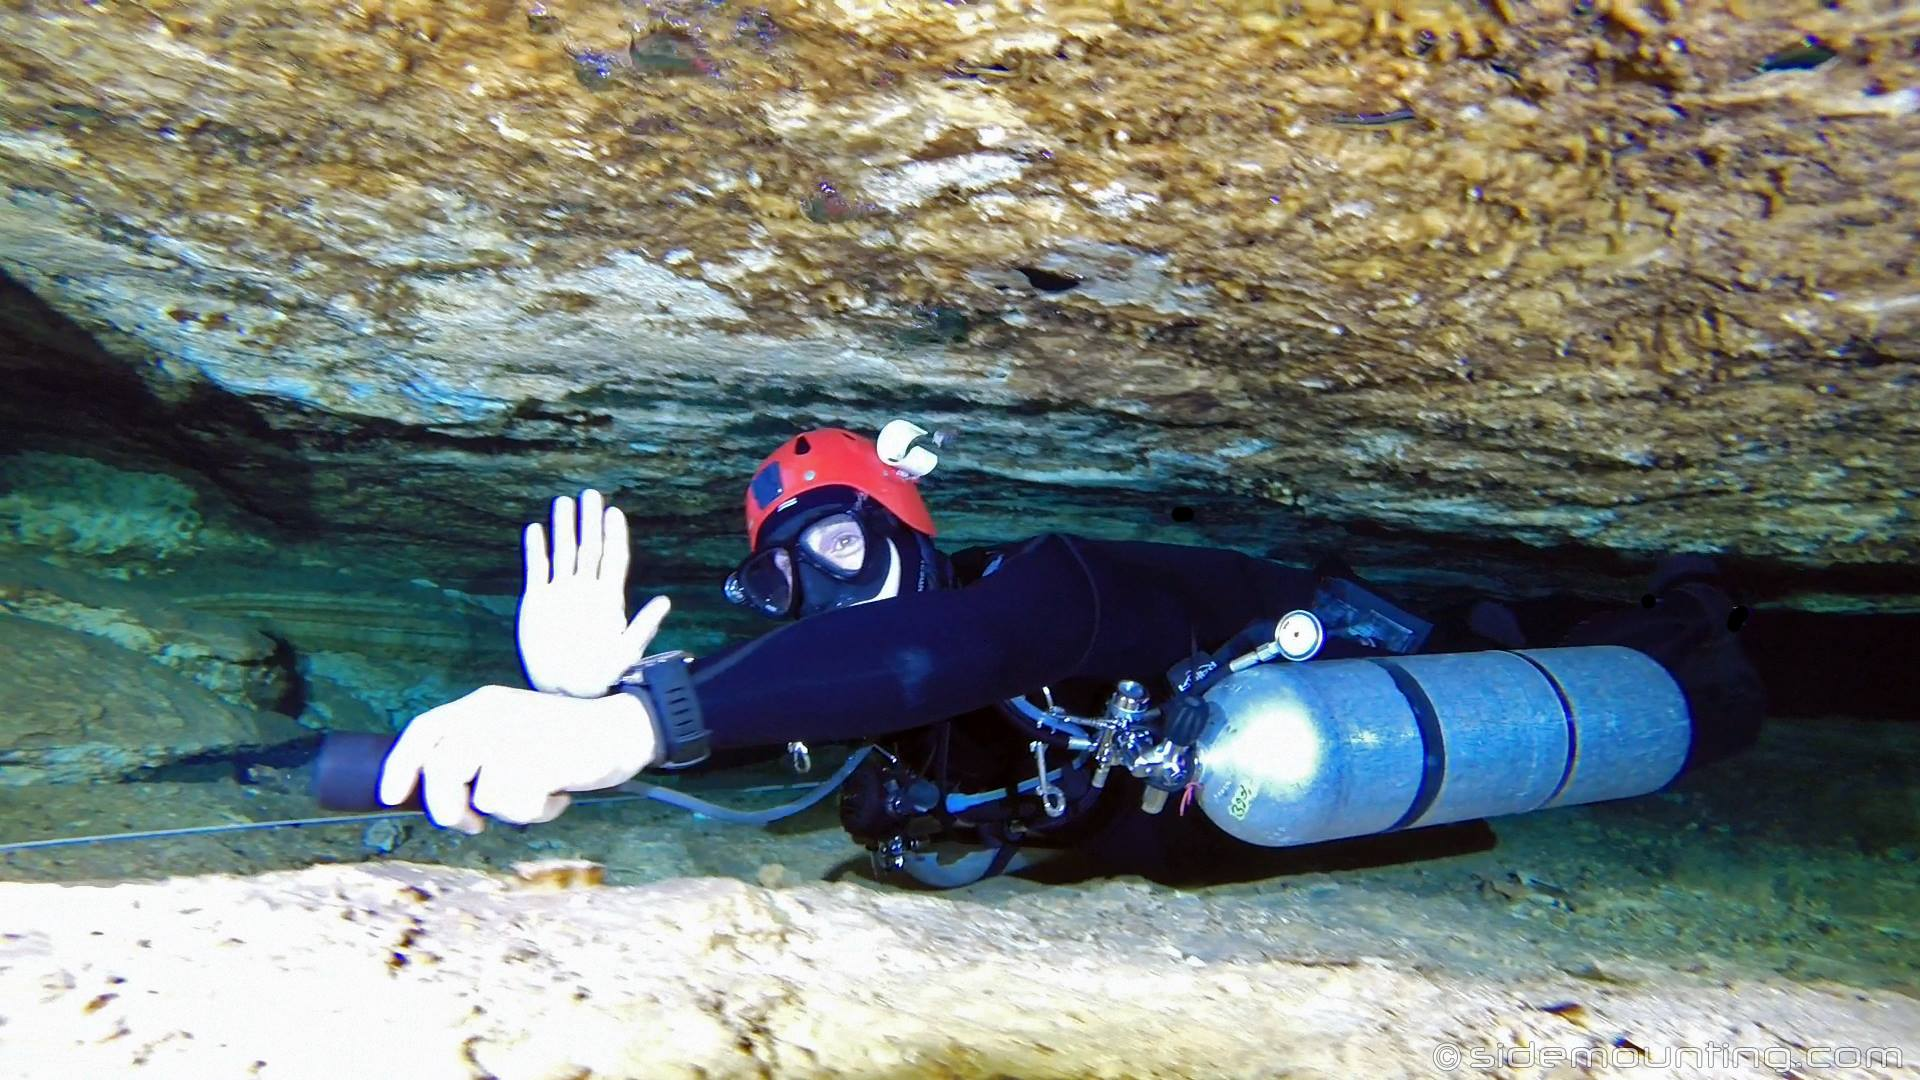 Cave Diver in a restriction